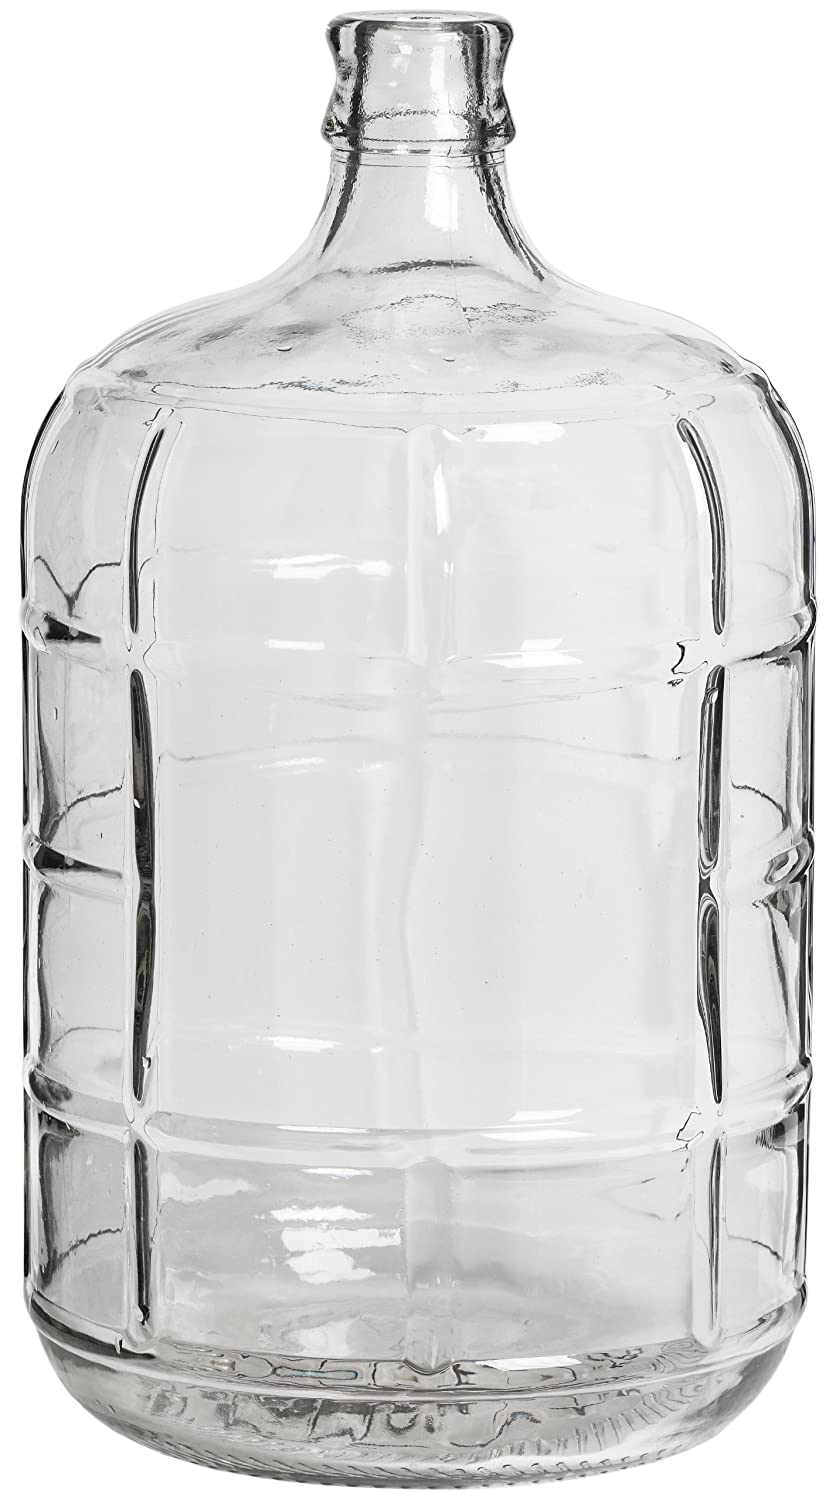 Glass Carboy Max 56% OFF 11.3 0.44-Pound Liter Cheap super special price Box